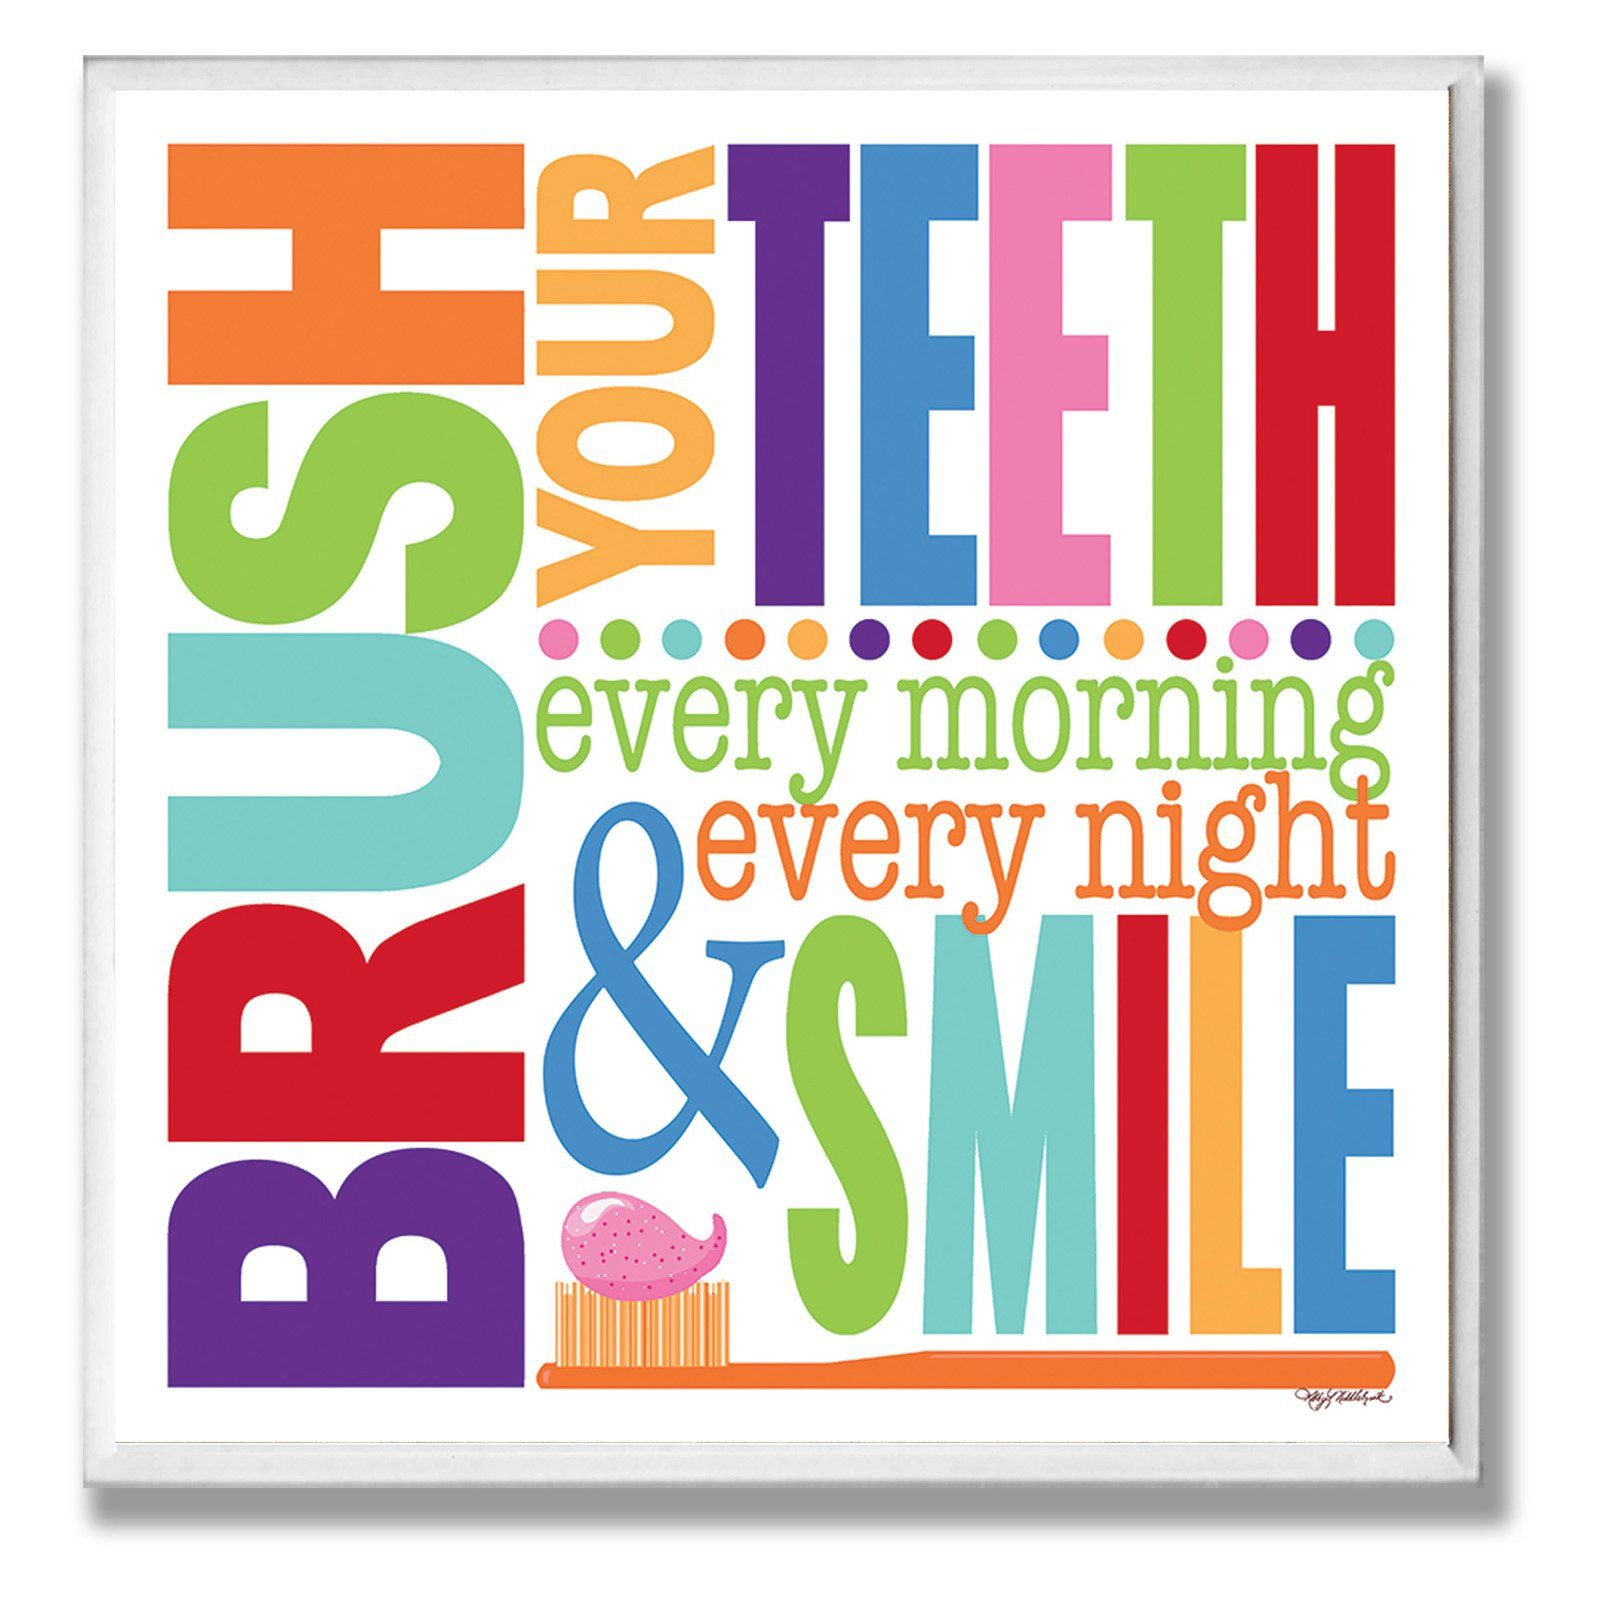 Brush Every Morning Colorful Bathroom Wall Plaque Bathroom Wall Plaques Wall Plaques Bathroom Colors